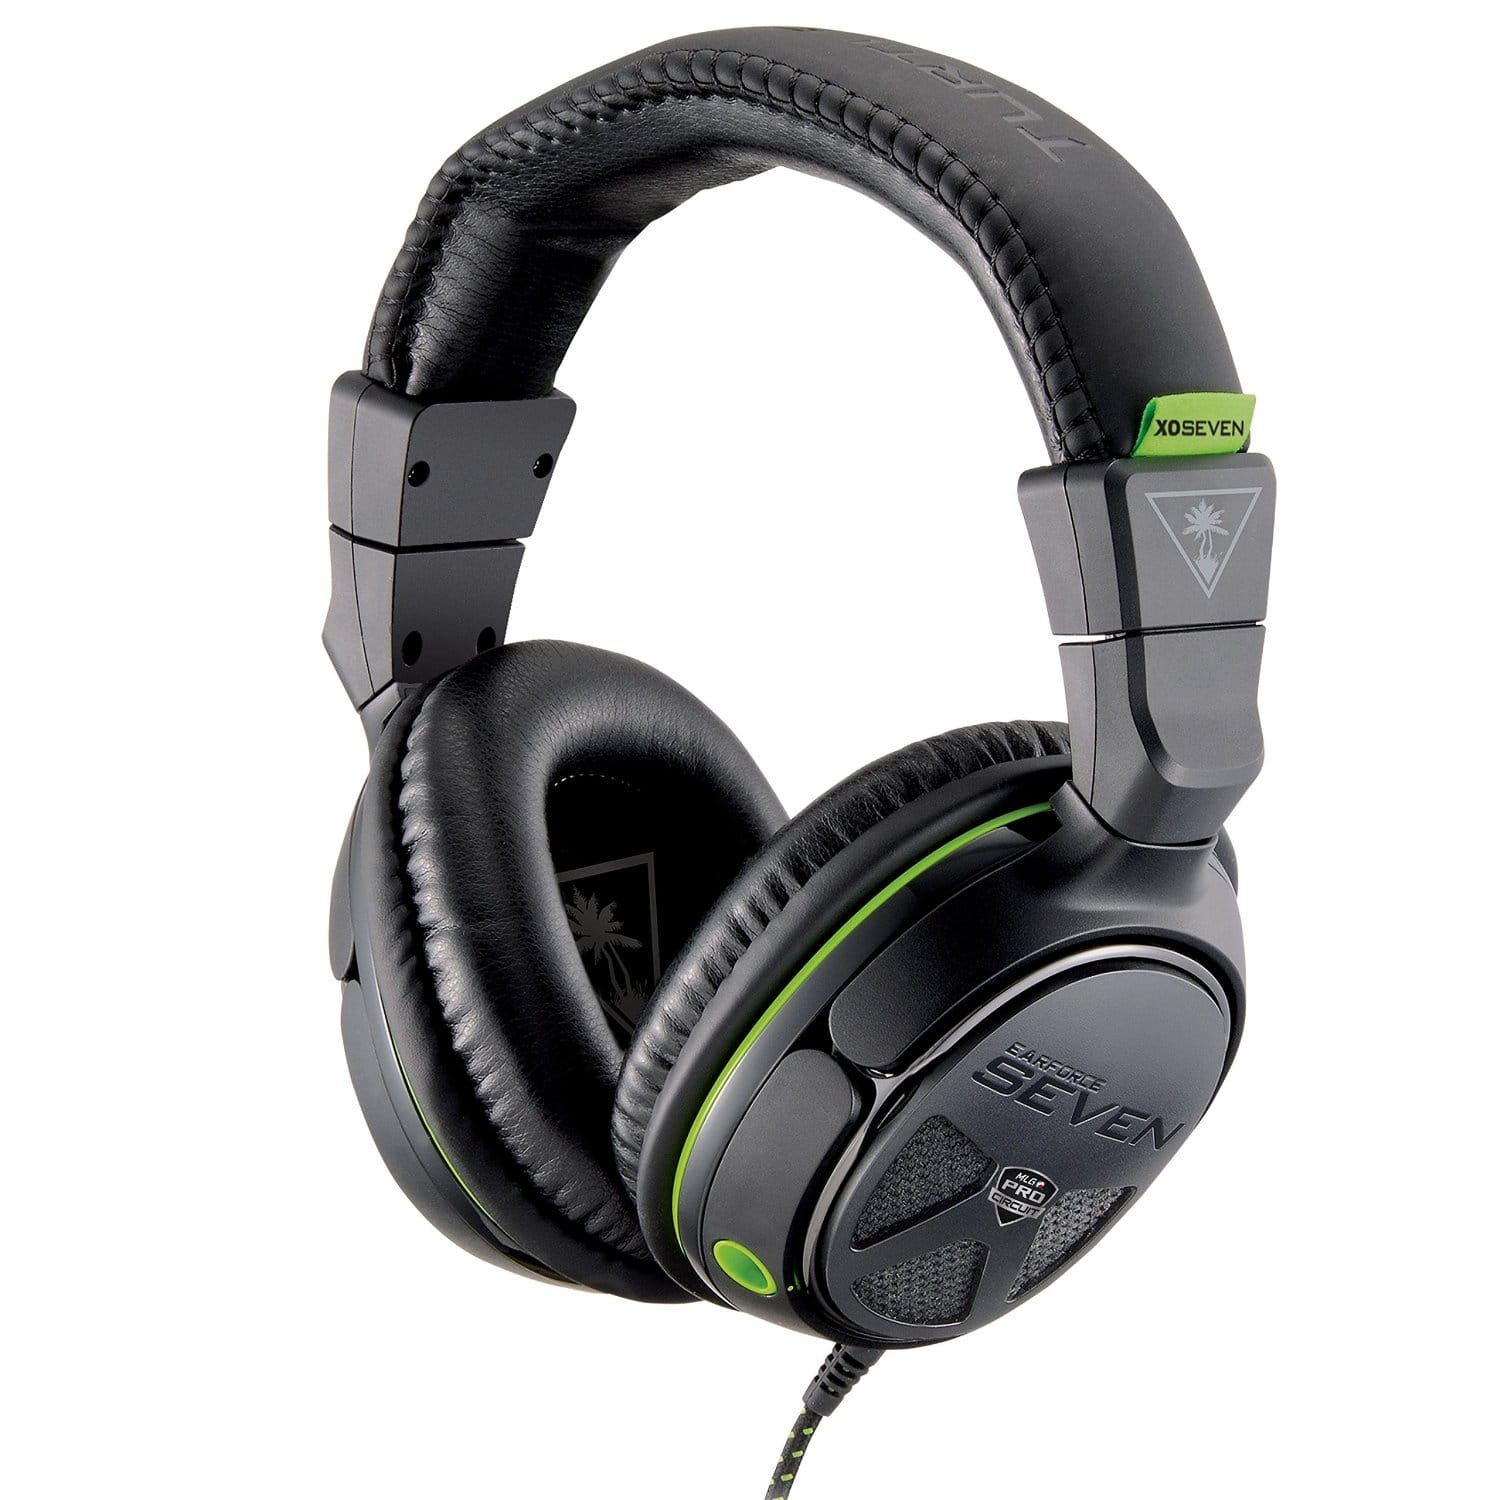 Turtle Beach Ear Force XO Seven Premium Gaming Headset - $59.99 + FS